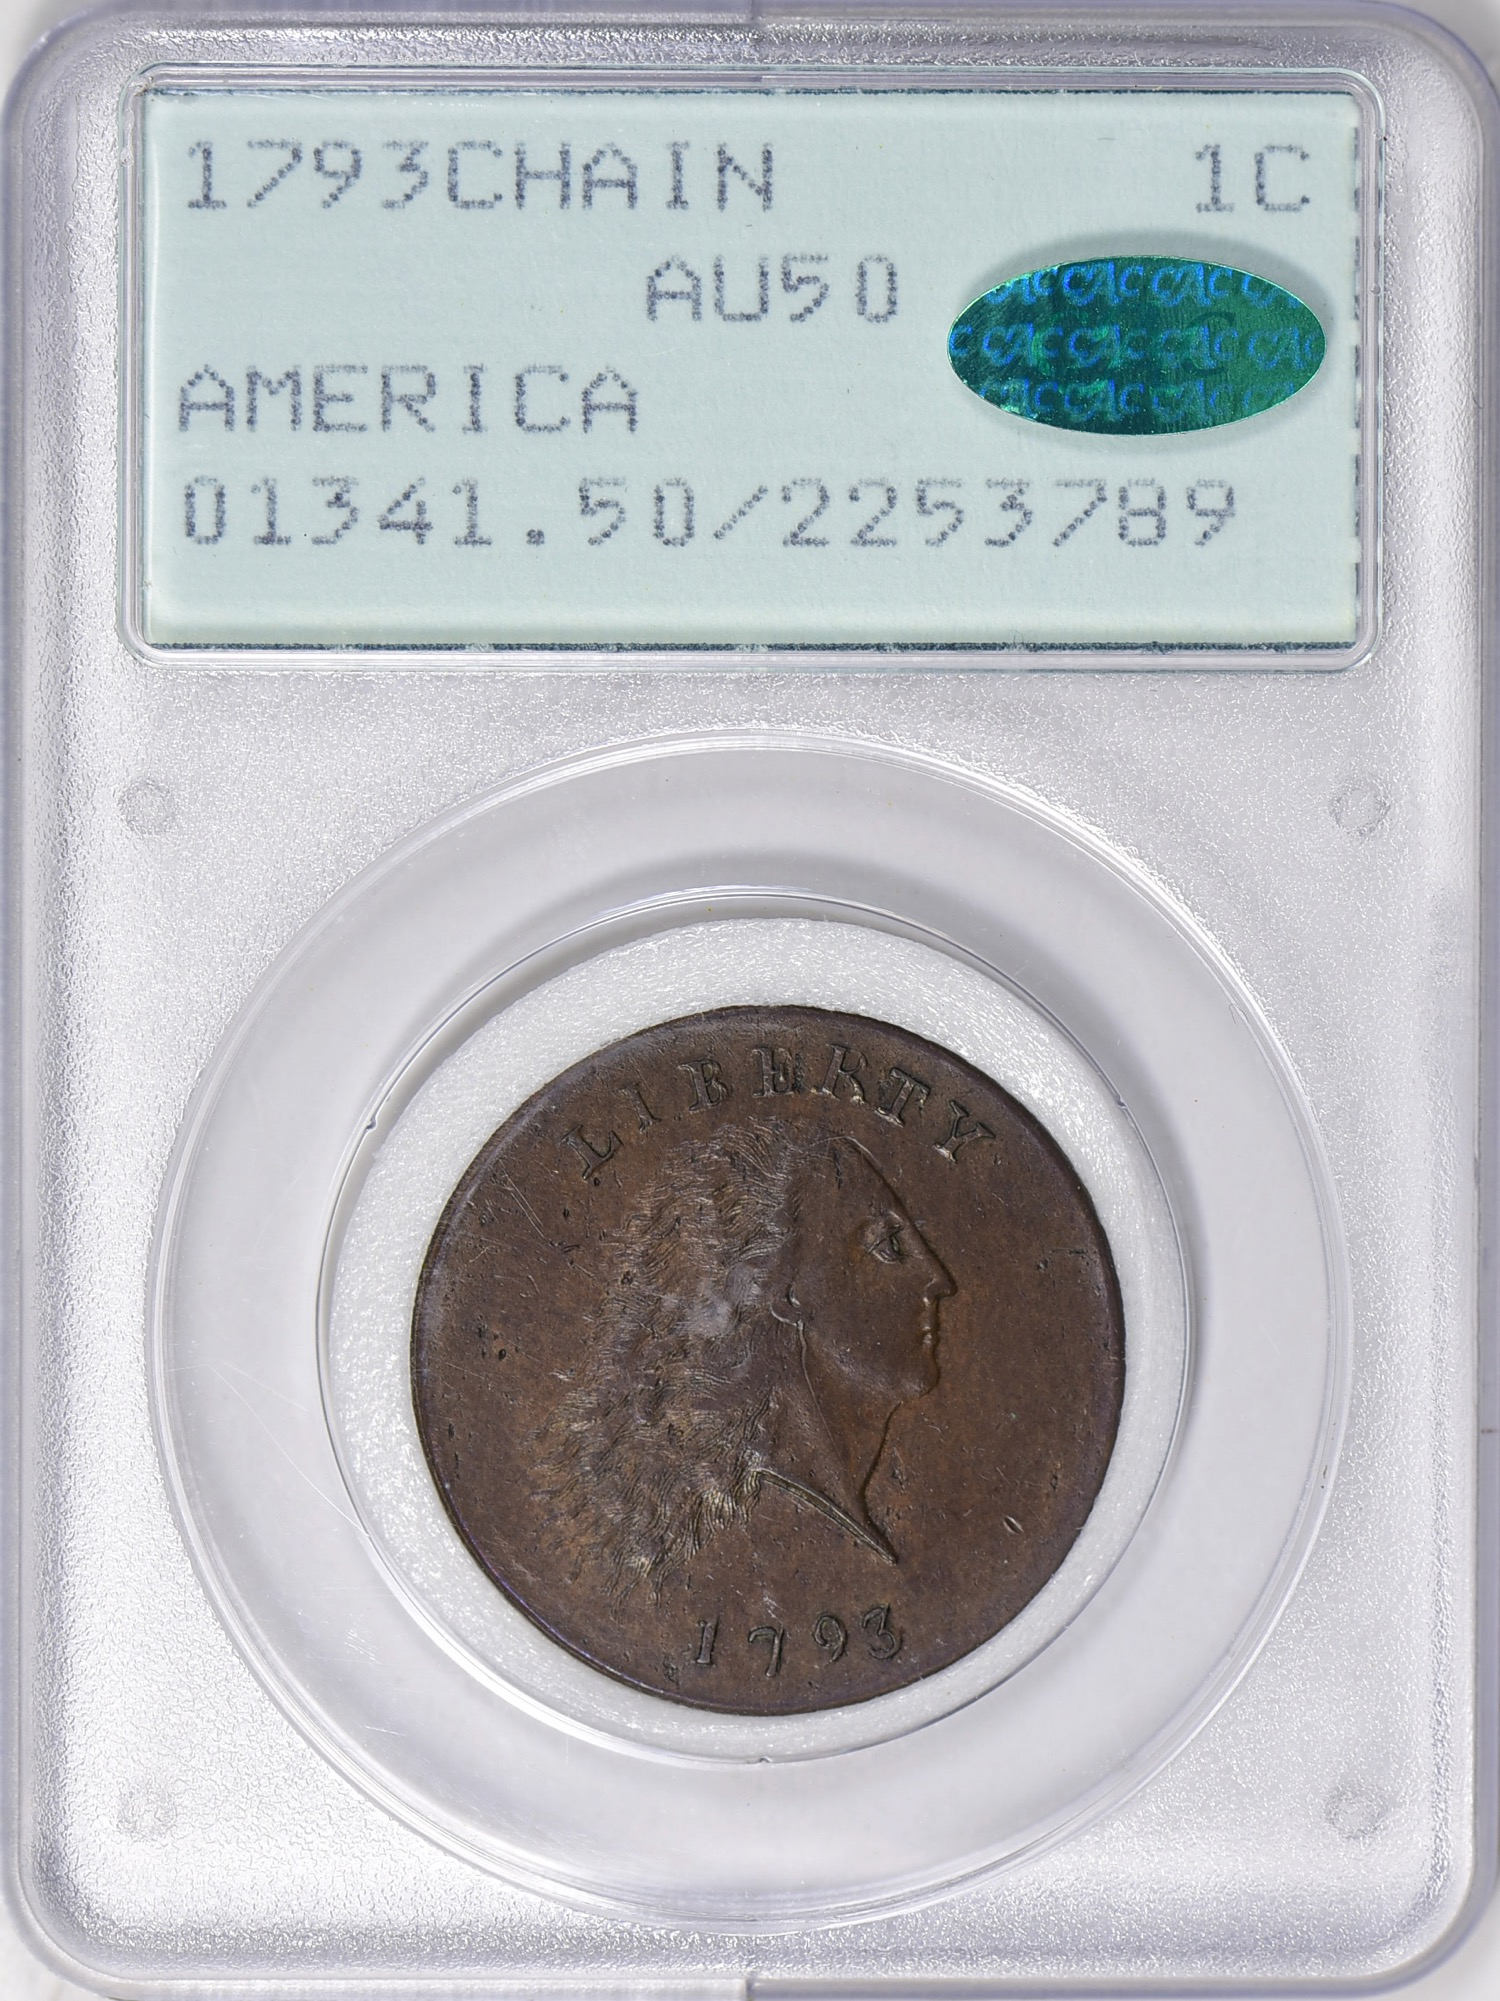 thumbnail image for GreatCollections Ultimate Auction Realizes $3 Million